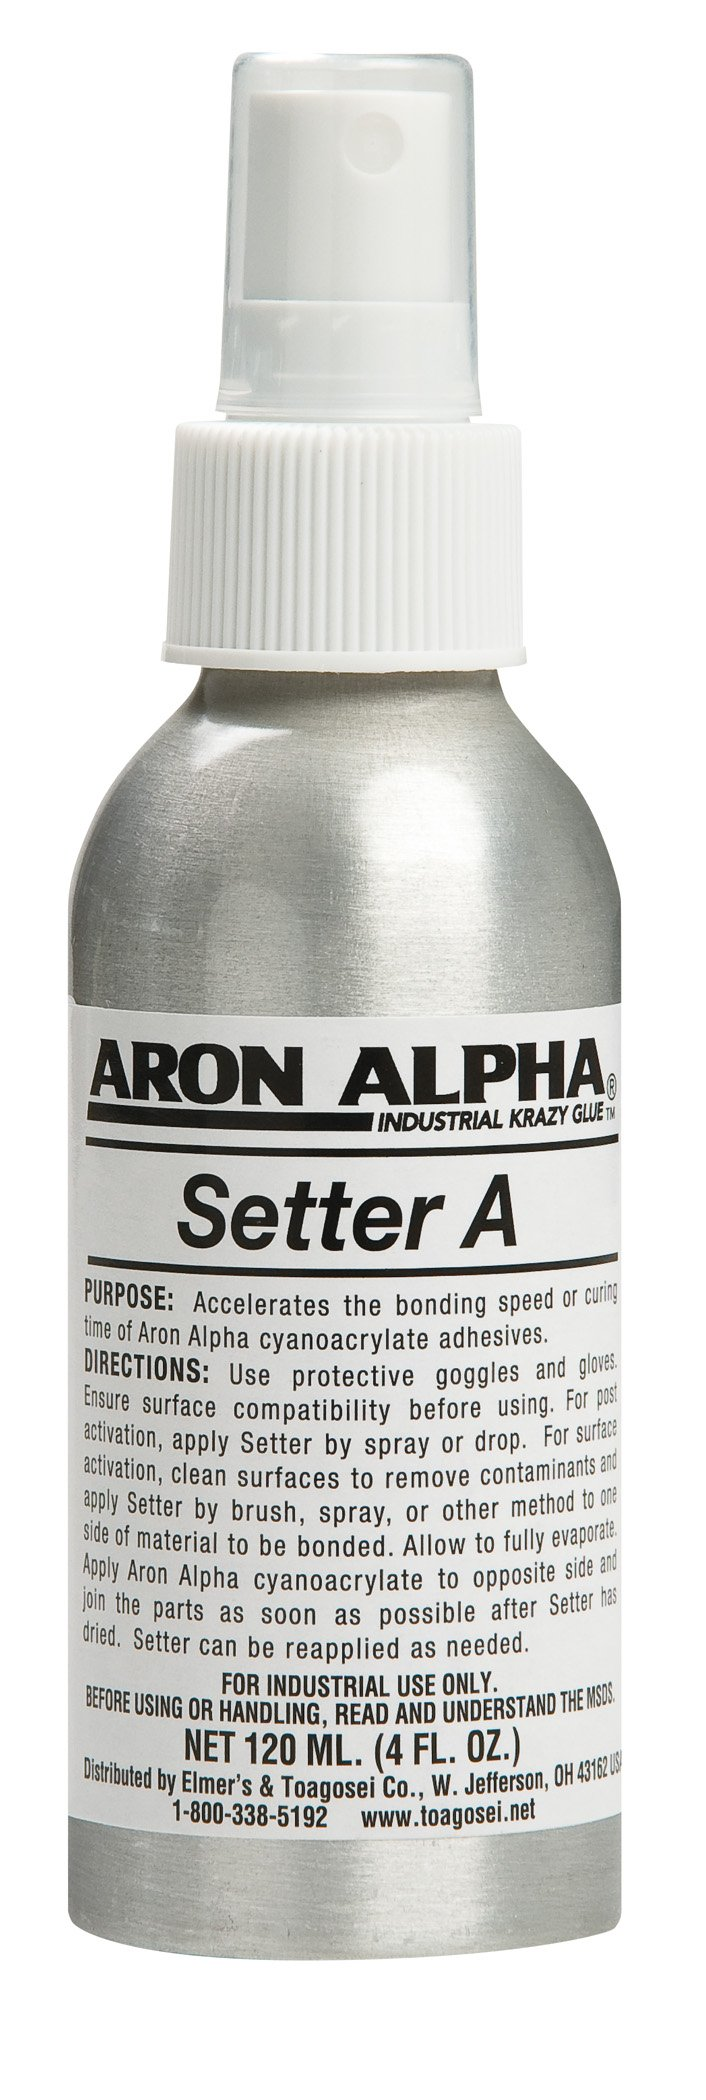 Aron Alpha Setter H With Pump Action Spray Mister For Use With Instant Adhesives. 120 ml (4 oz)